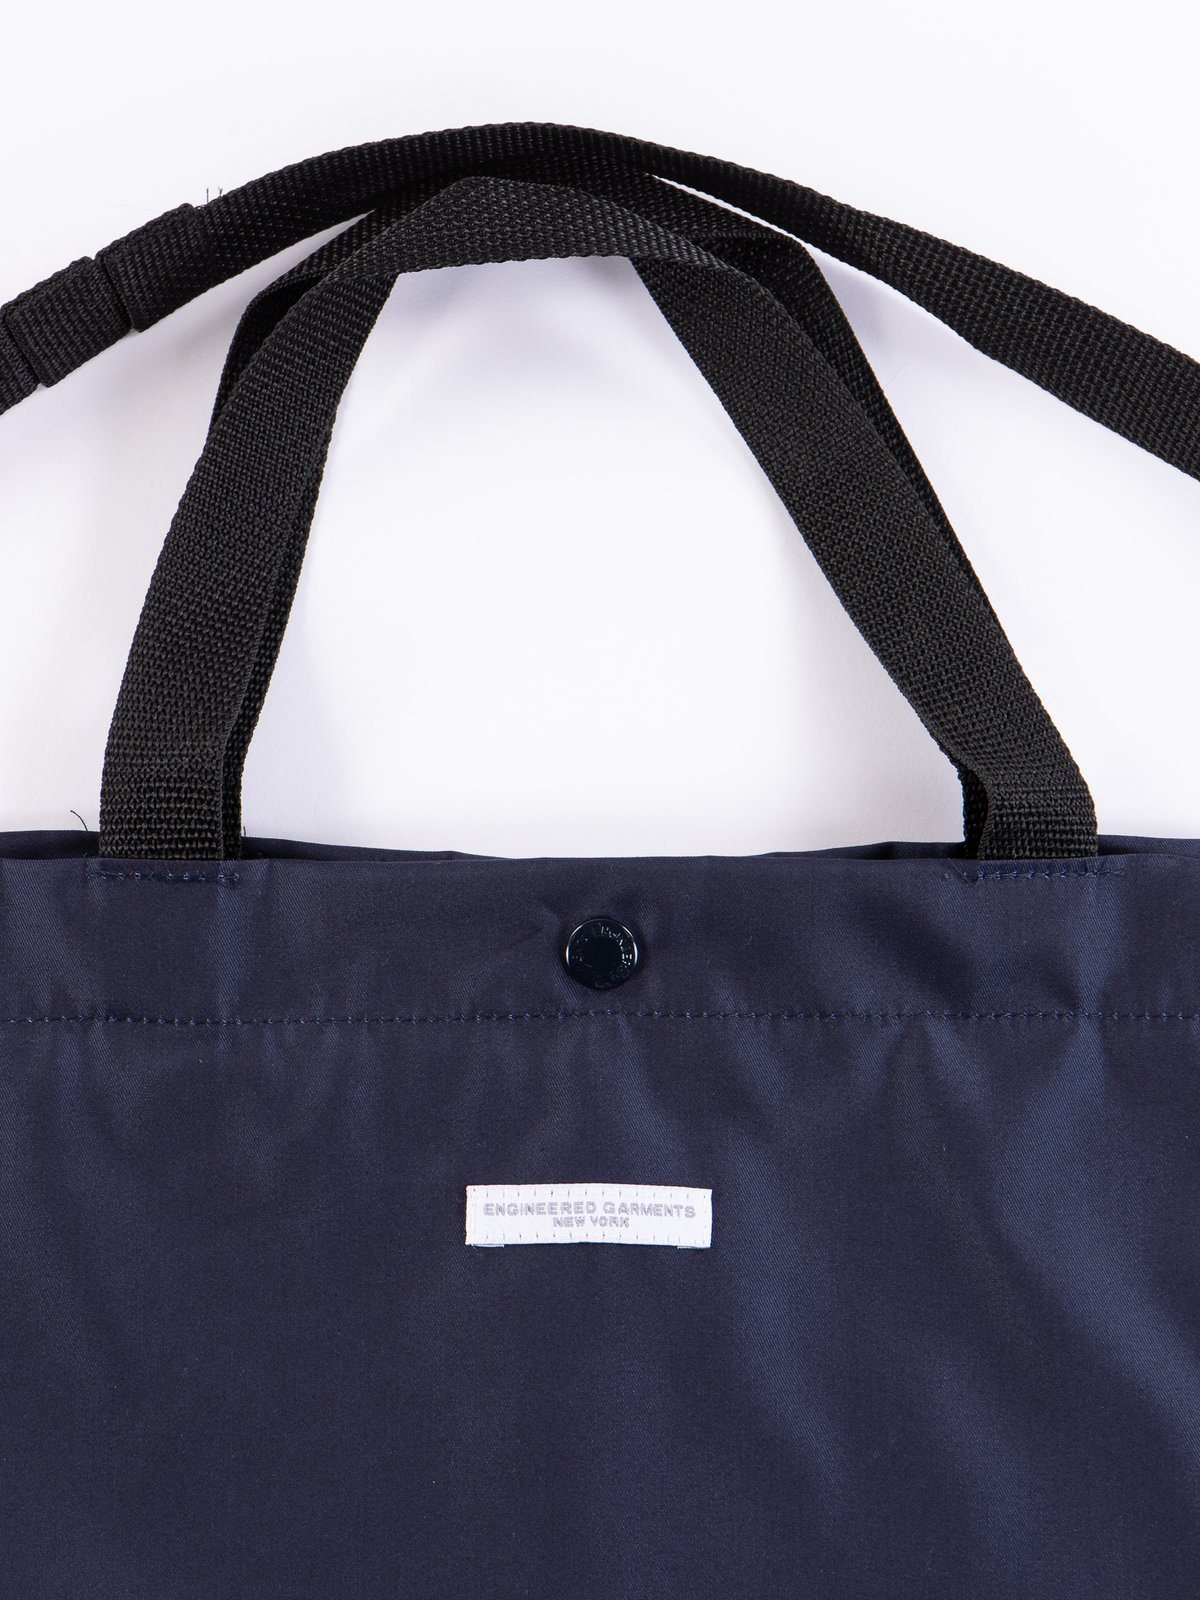 Navy PC Iridescent Twill Carry All Tote - Image 3